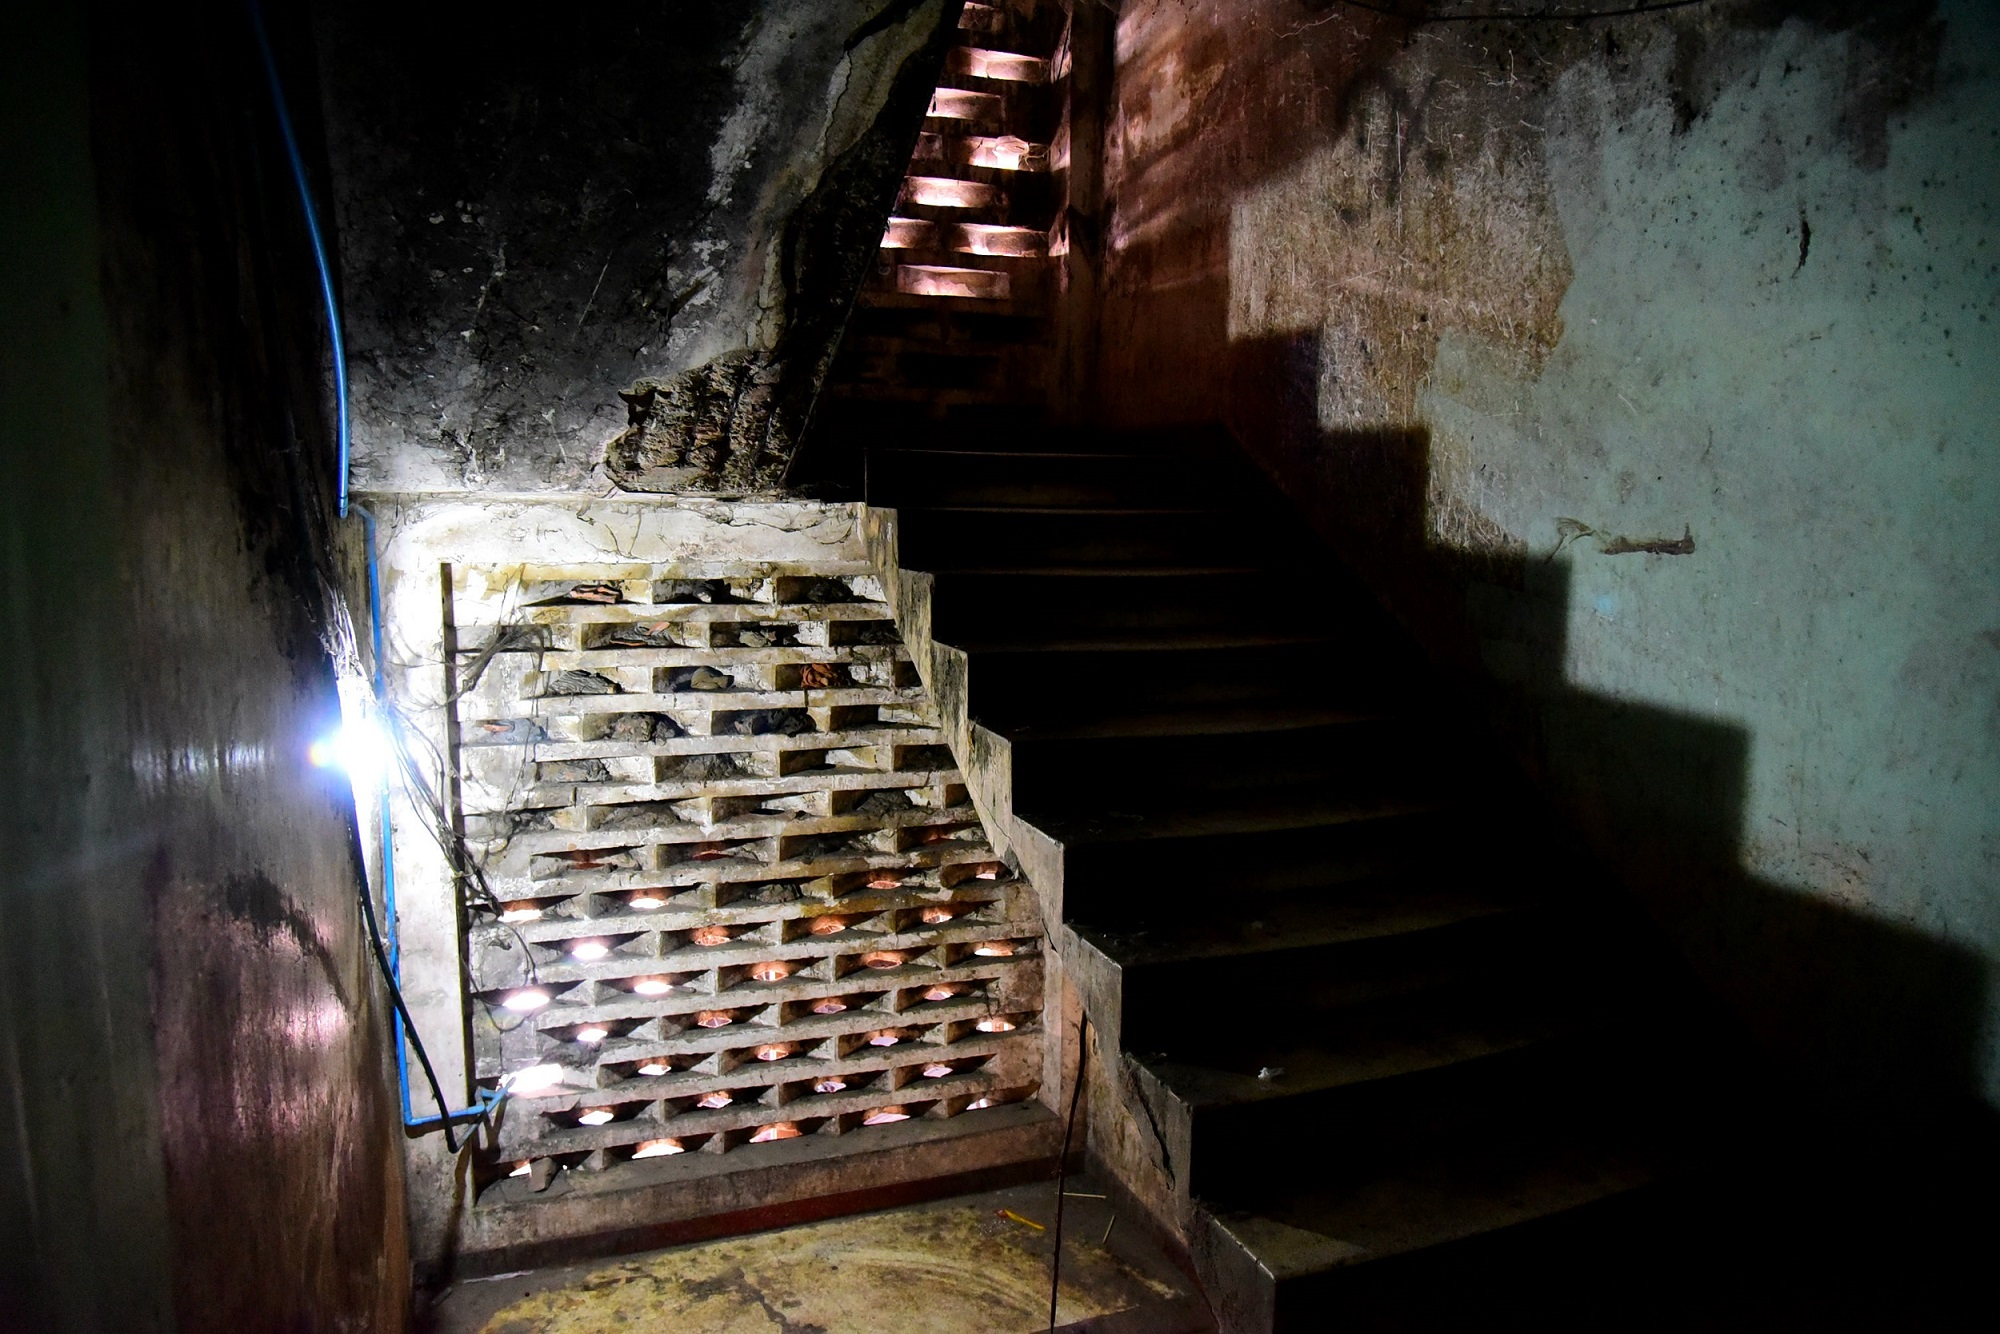 A decrepit staircase inside the White Building.